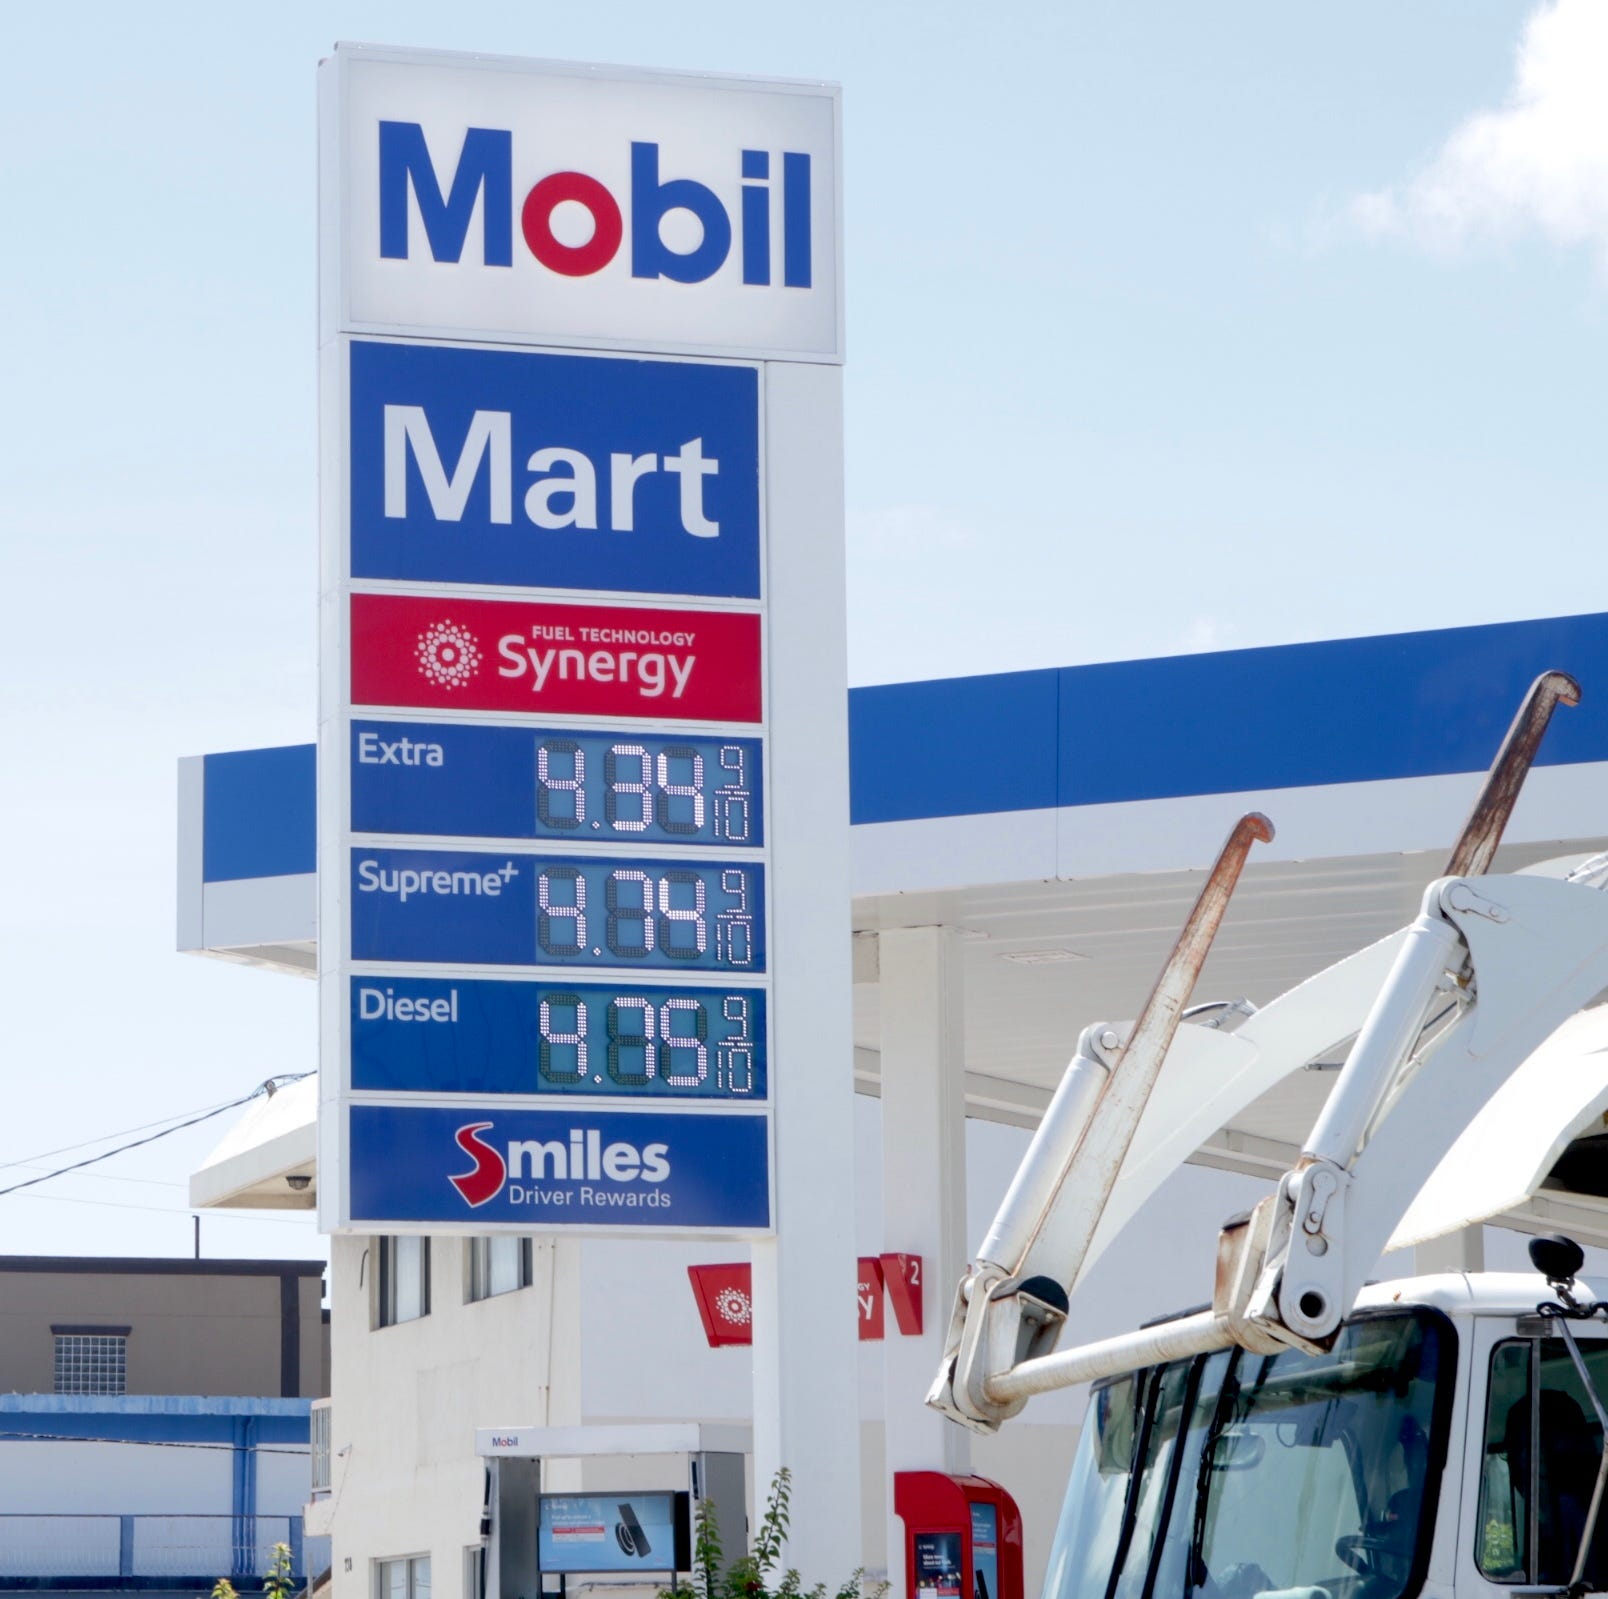 Mobil increases gas price 10 cents, regular fuel now $4.35 a gallon in Guam